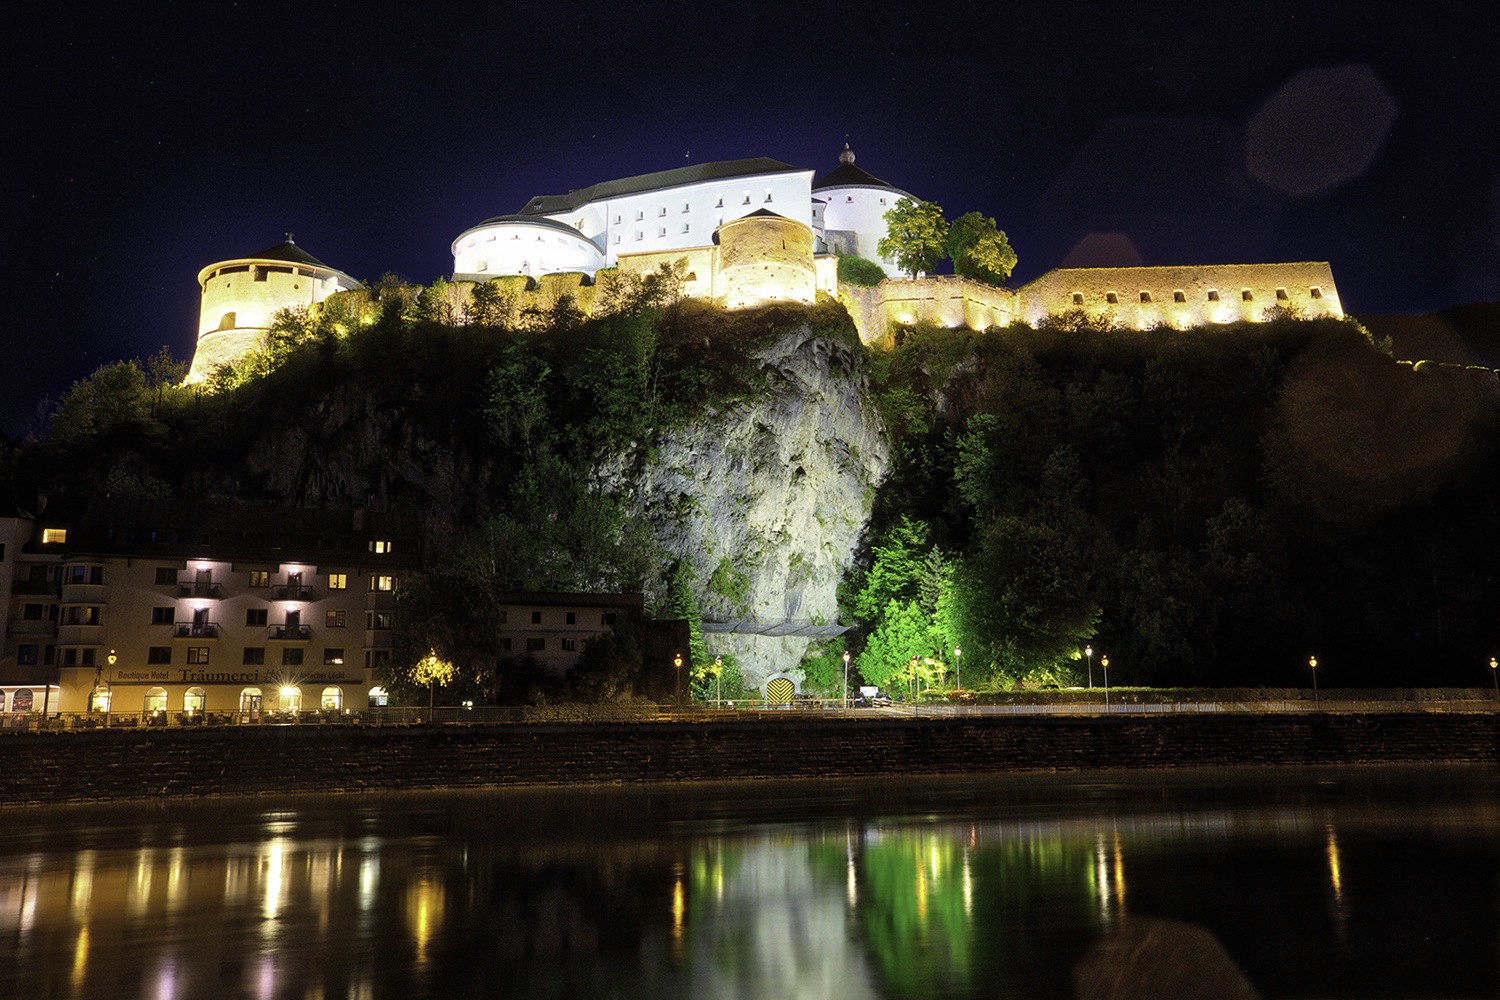 Location and Date: Kufstein, Austria; 13 May, 2017  Tech Specs: 28mm @ f/11.0, ISO 1000 (3 image HDR)  Camera & Lens: Canon 5D Mark III; Canon EF 16-35mm f/2.8L II USM